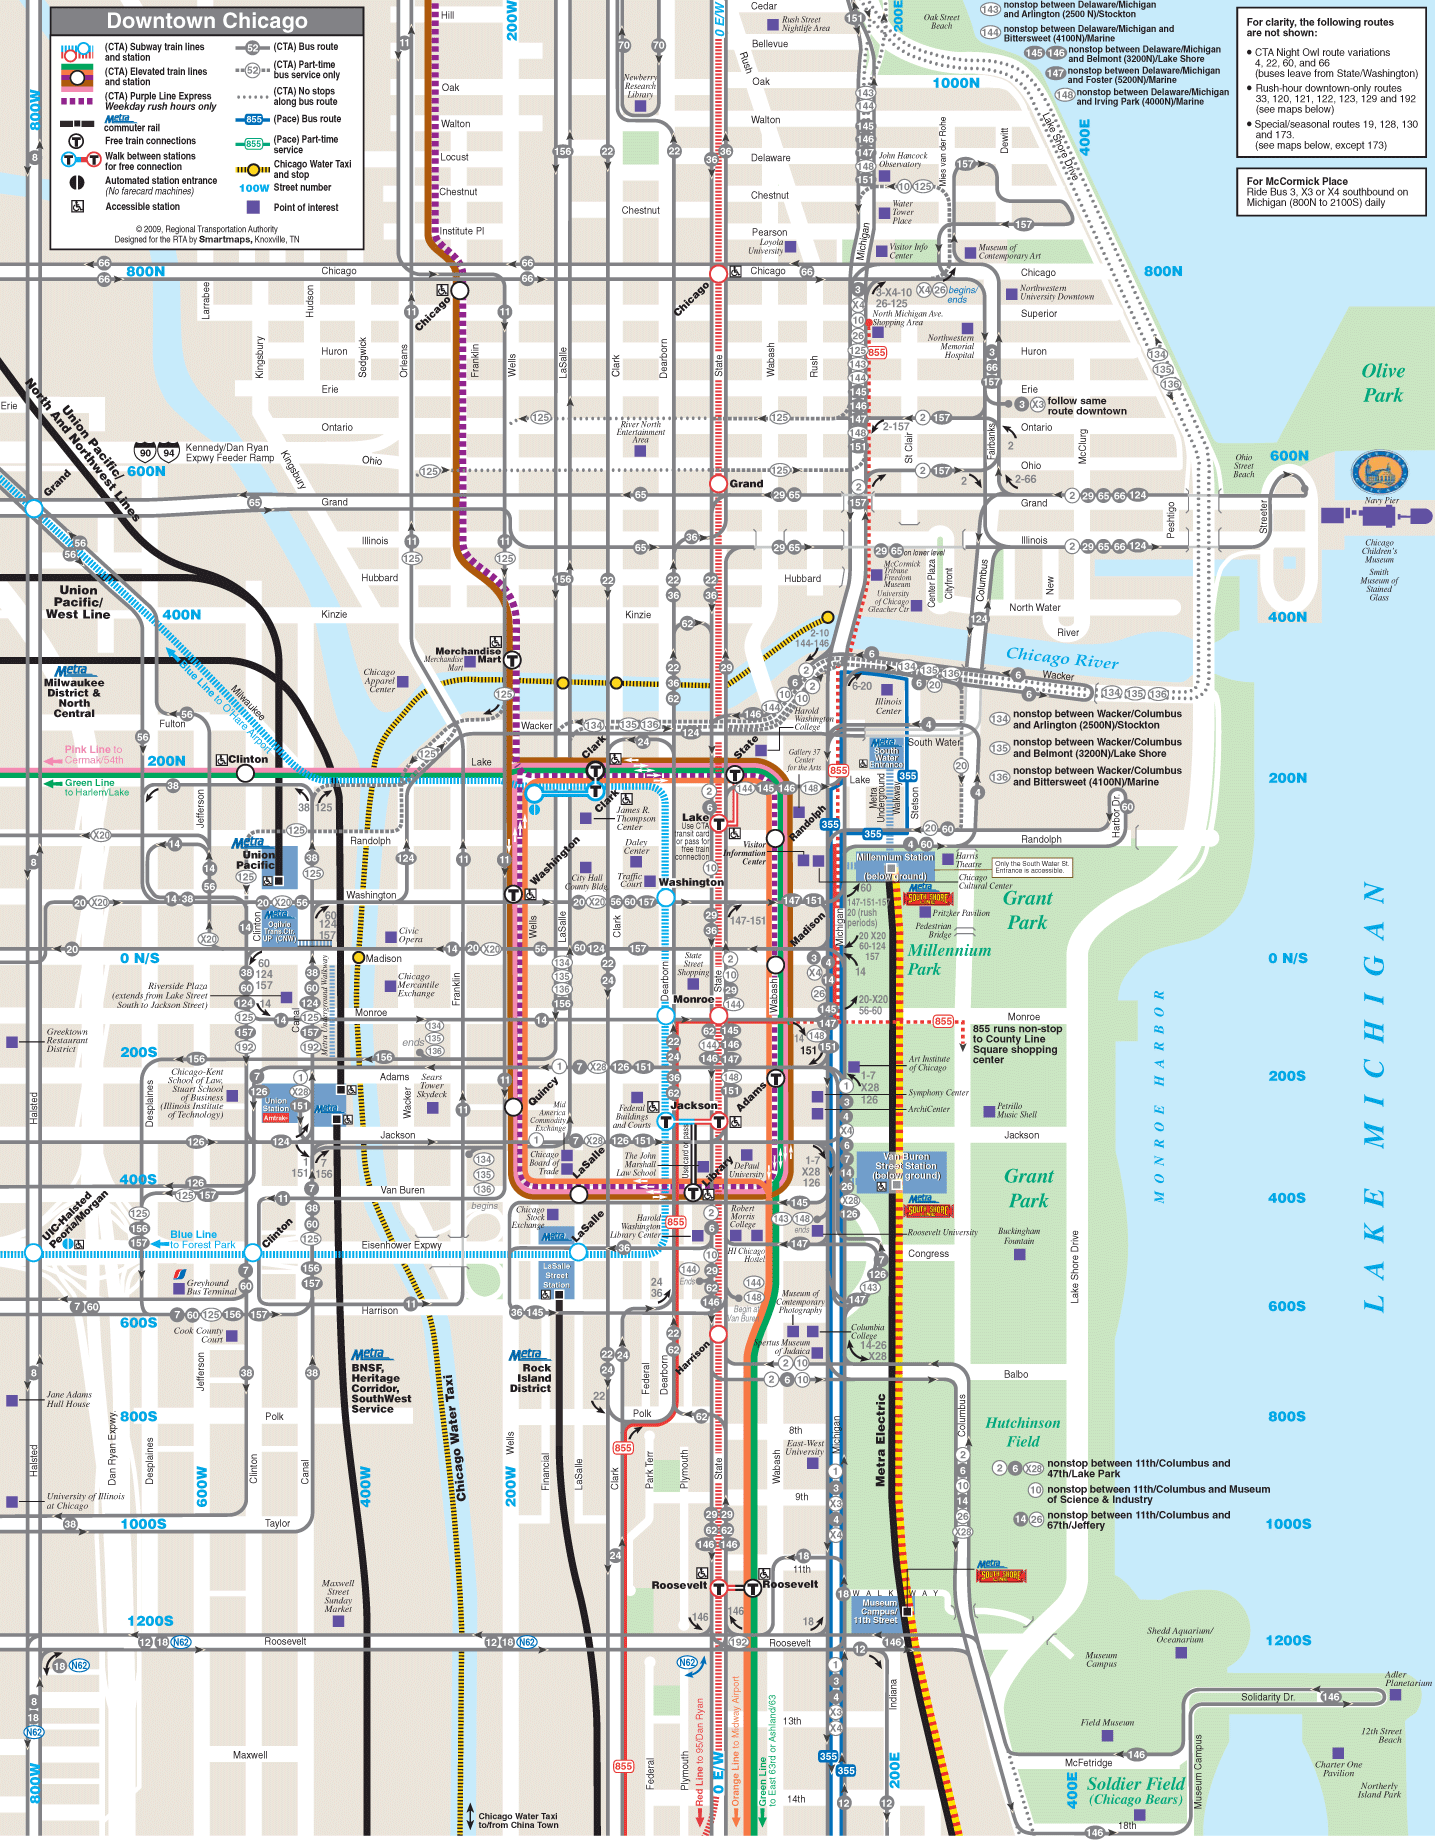 Chicago Downtown Map Chicago Downtown Transport Map • Mapsof.net Chicago Downtown Map